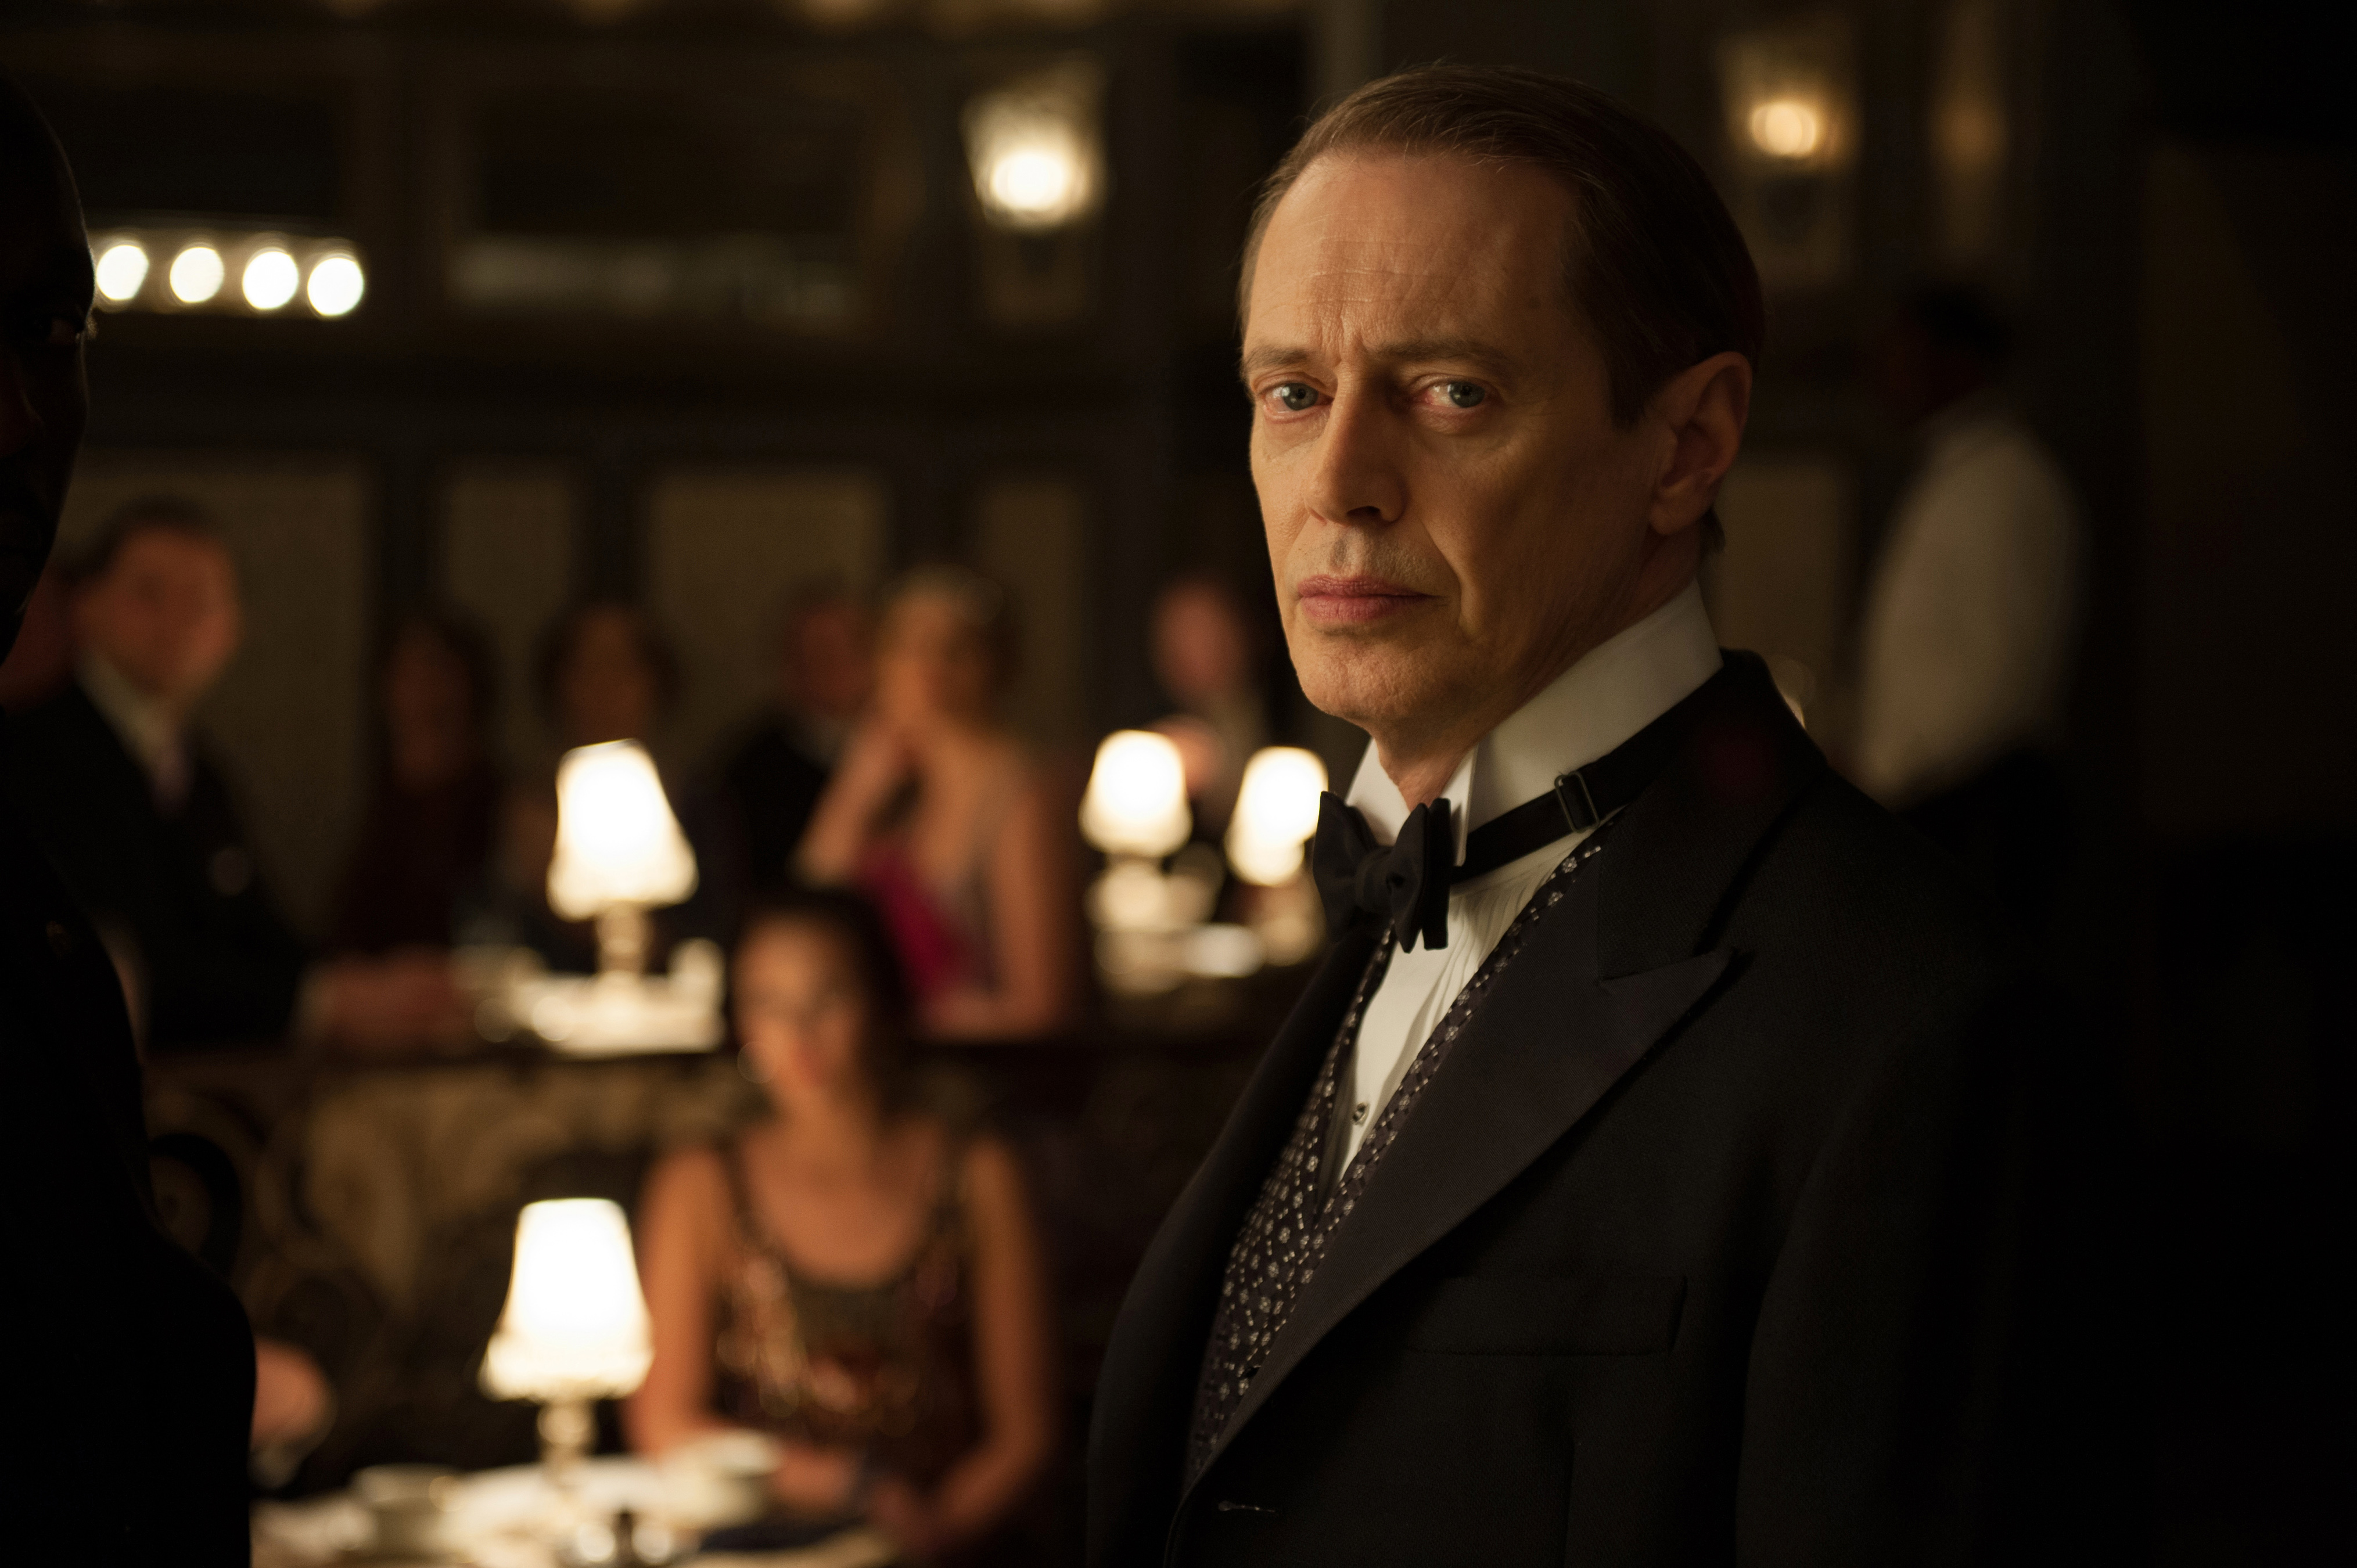 4058x2700 - Nucky Thompson Wallpapers 19